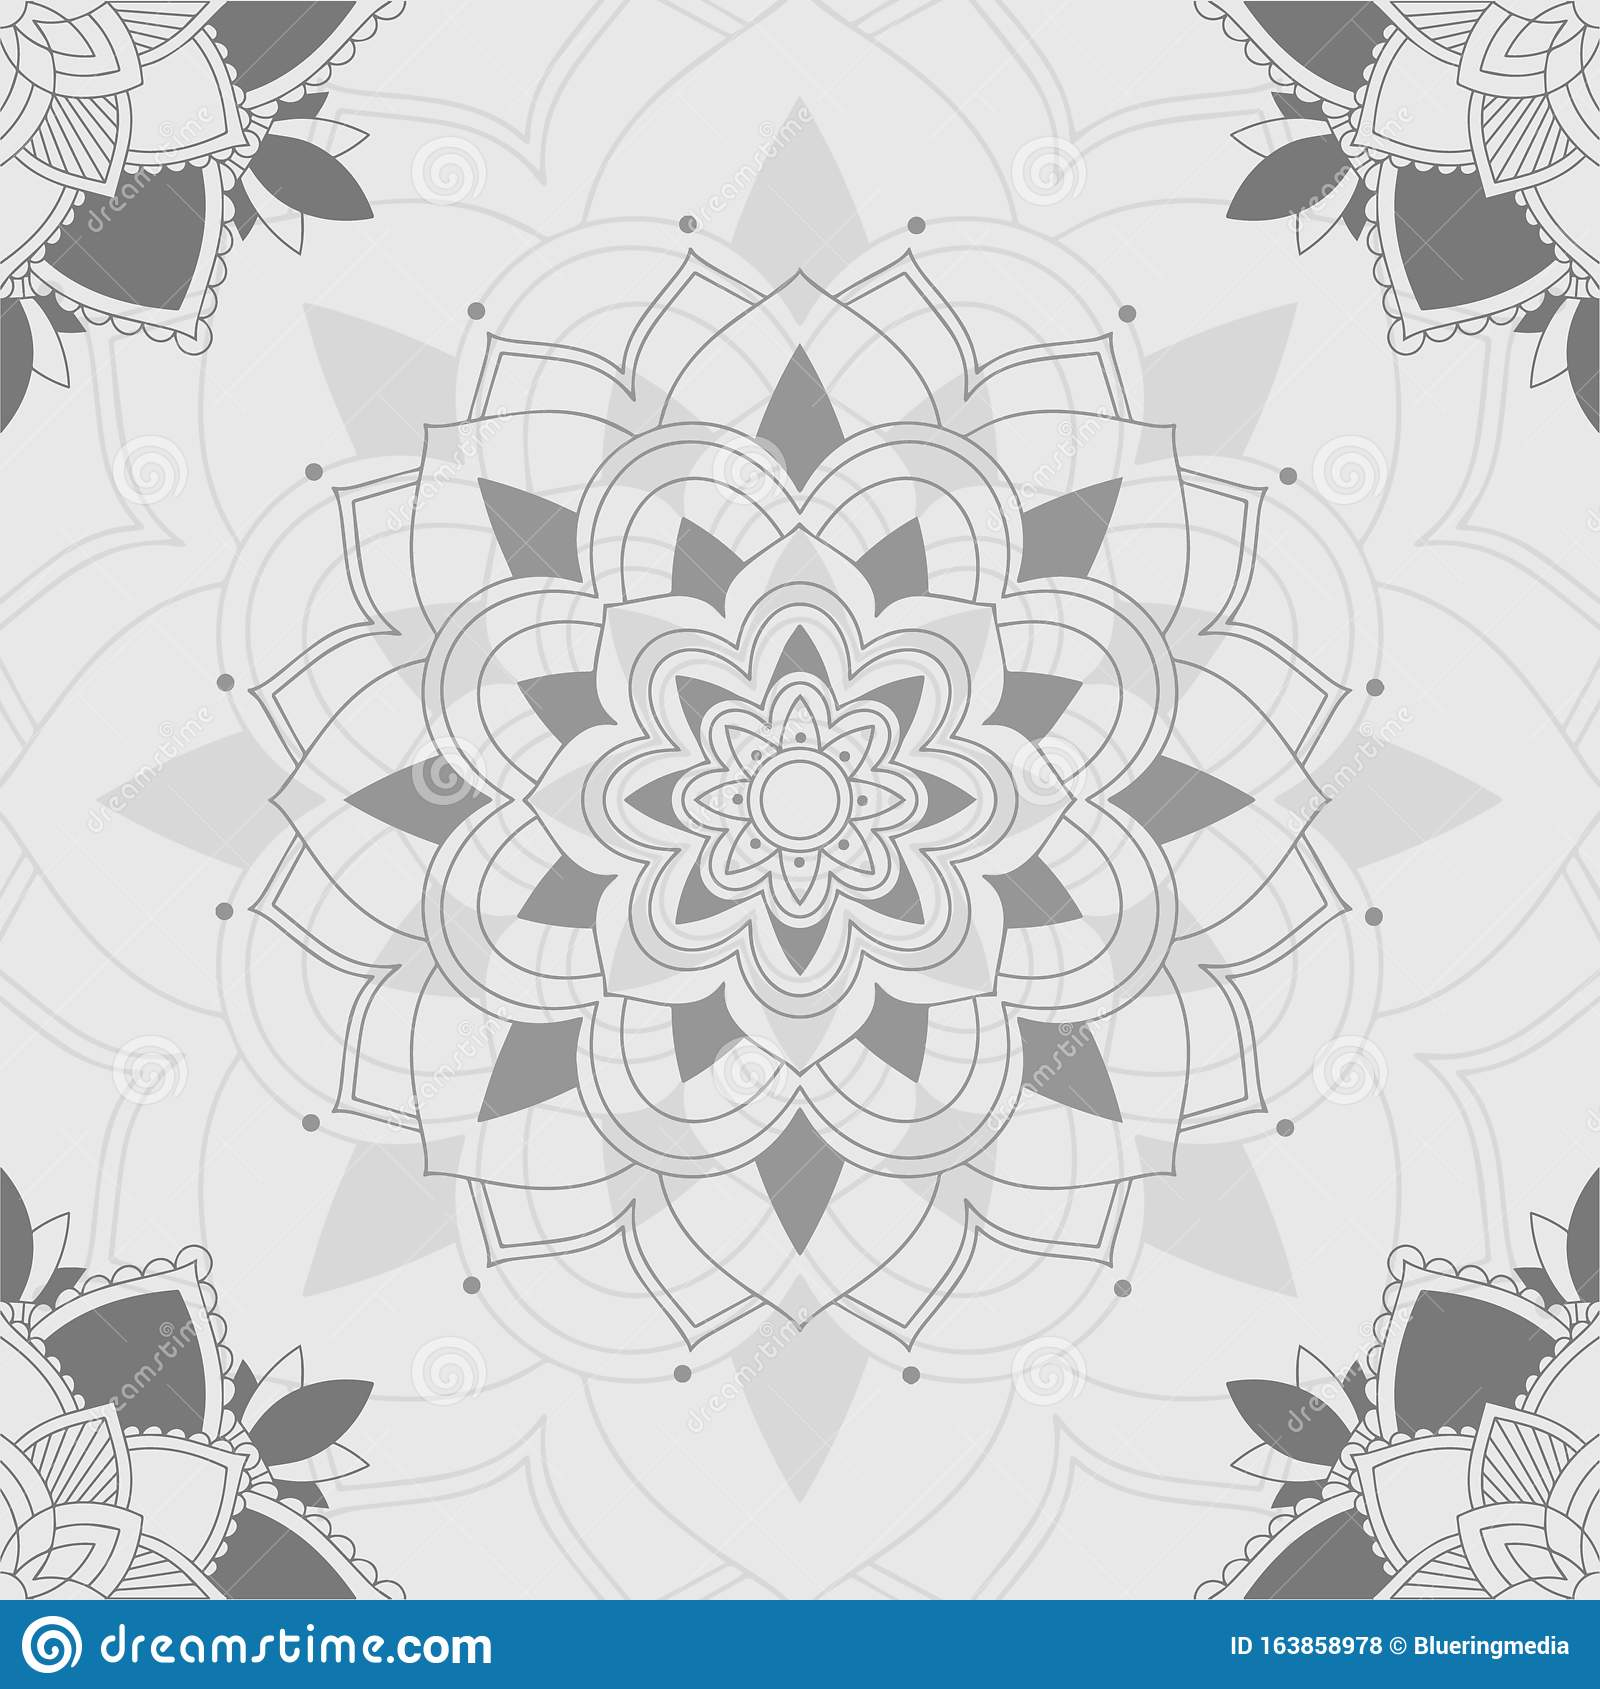 Mandala Patterns On Gray Background Stock Vector Illustration Of Card Colour 163858978